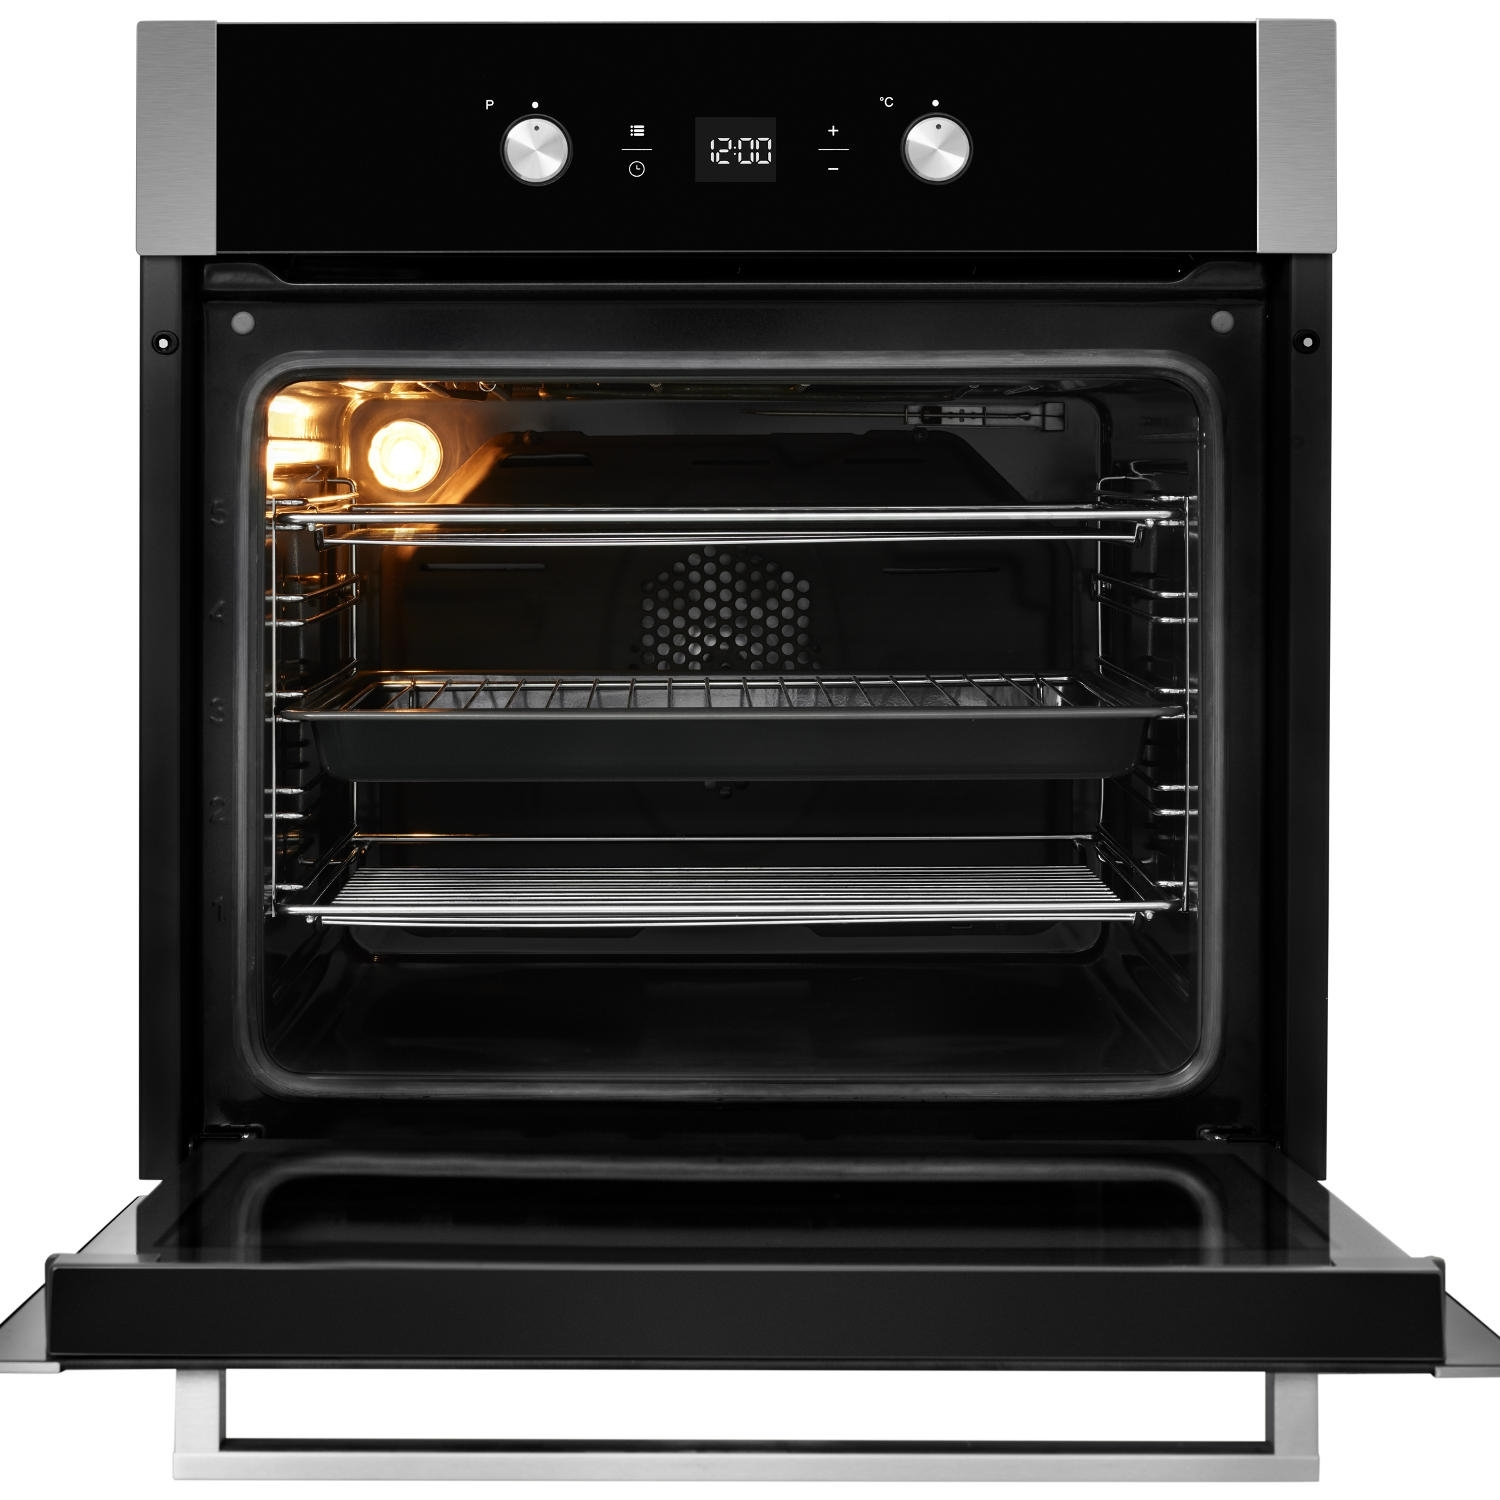 Blomberg OEN9302X 59.4cm Built Electric Single Oven - Stainless Steel - 4